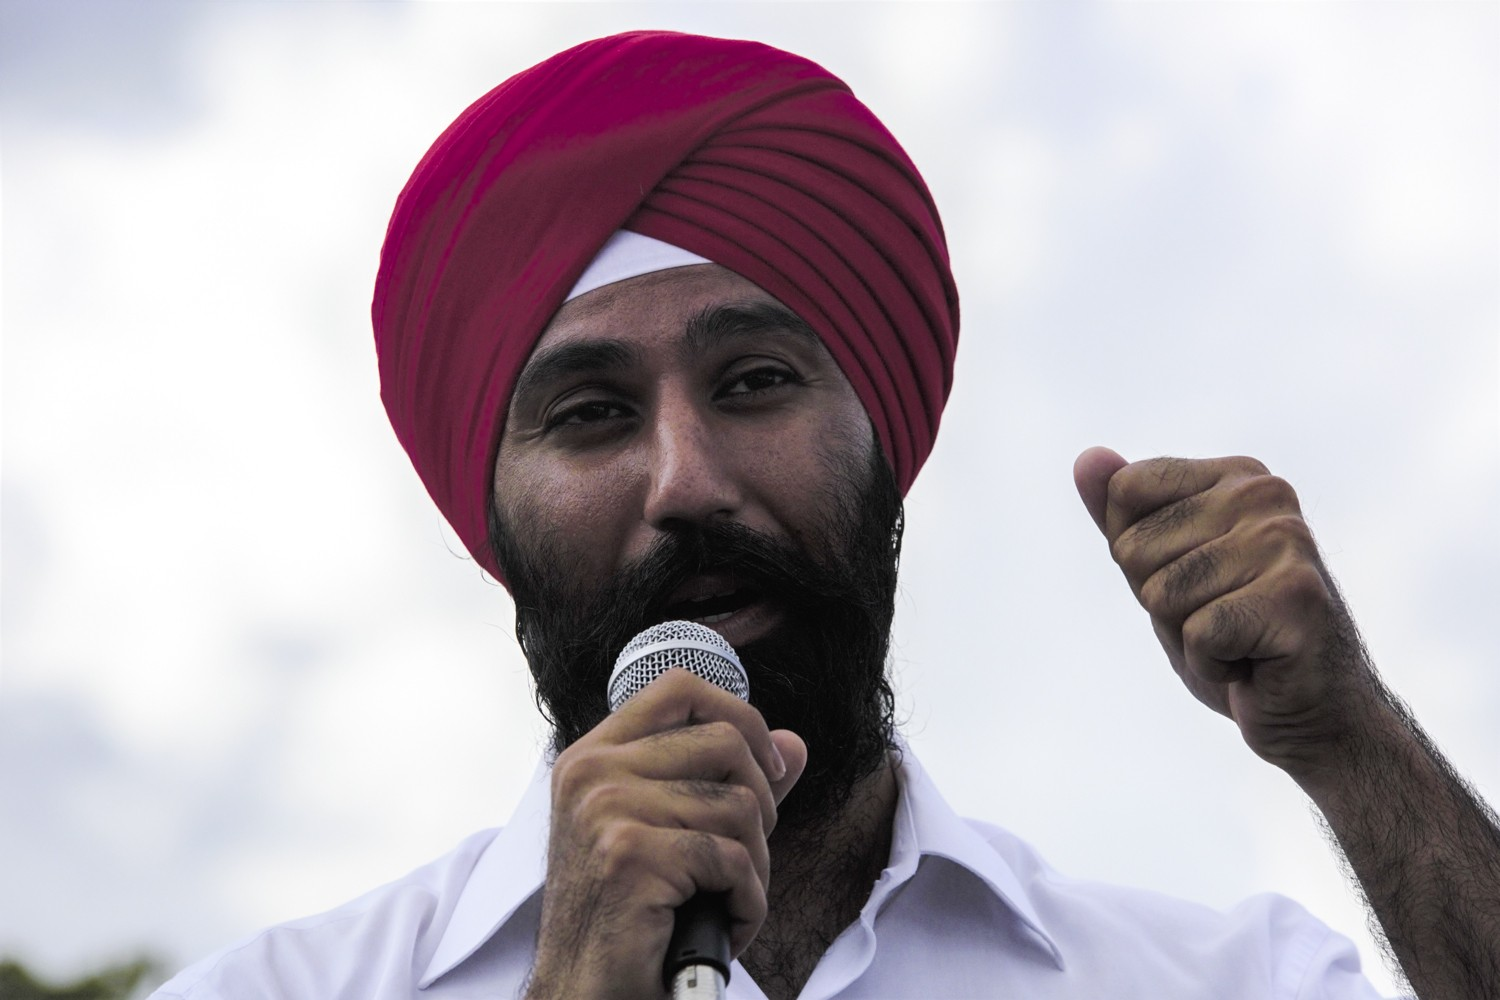 Raj Grewal says he might not resign; defends role in Goreway Bridge project